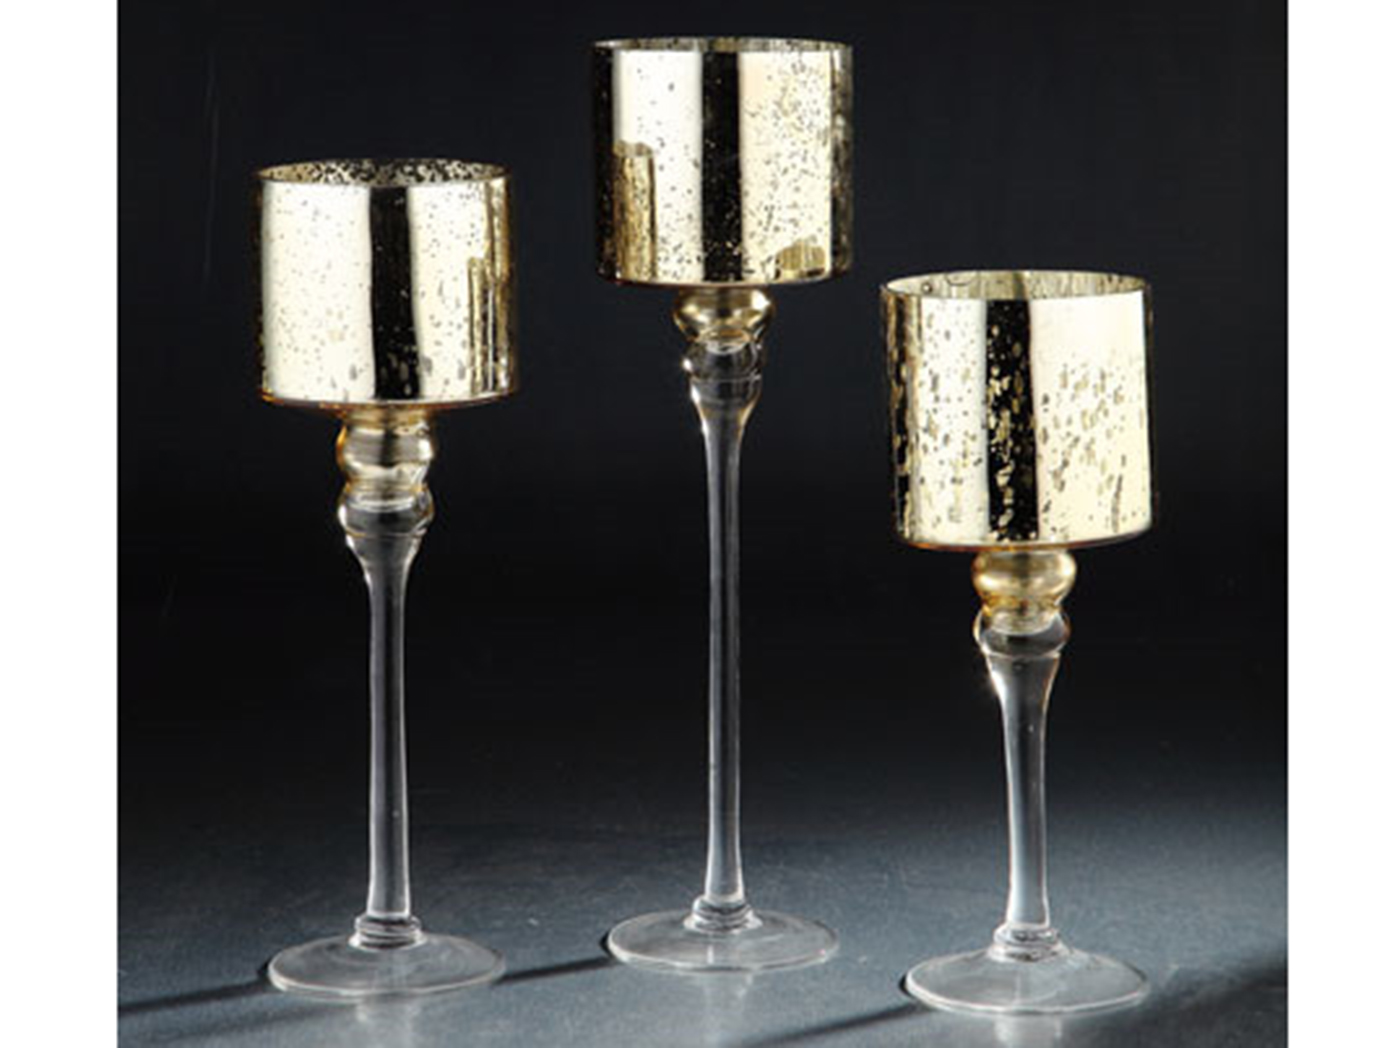 "Set of 3 Gold Mercury Glass Candleholder 12/14/15.5""H"